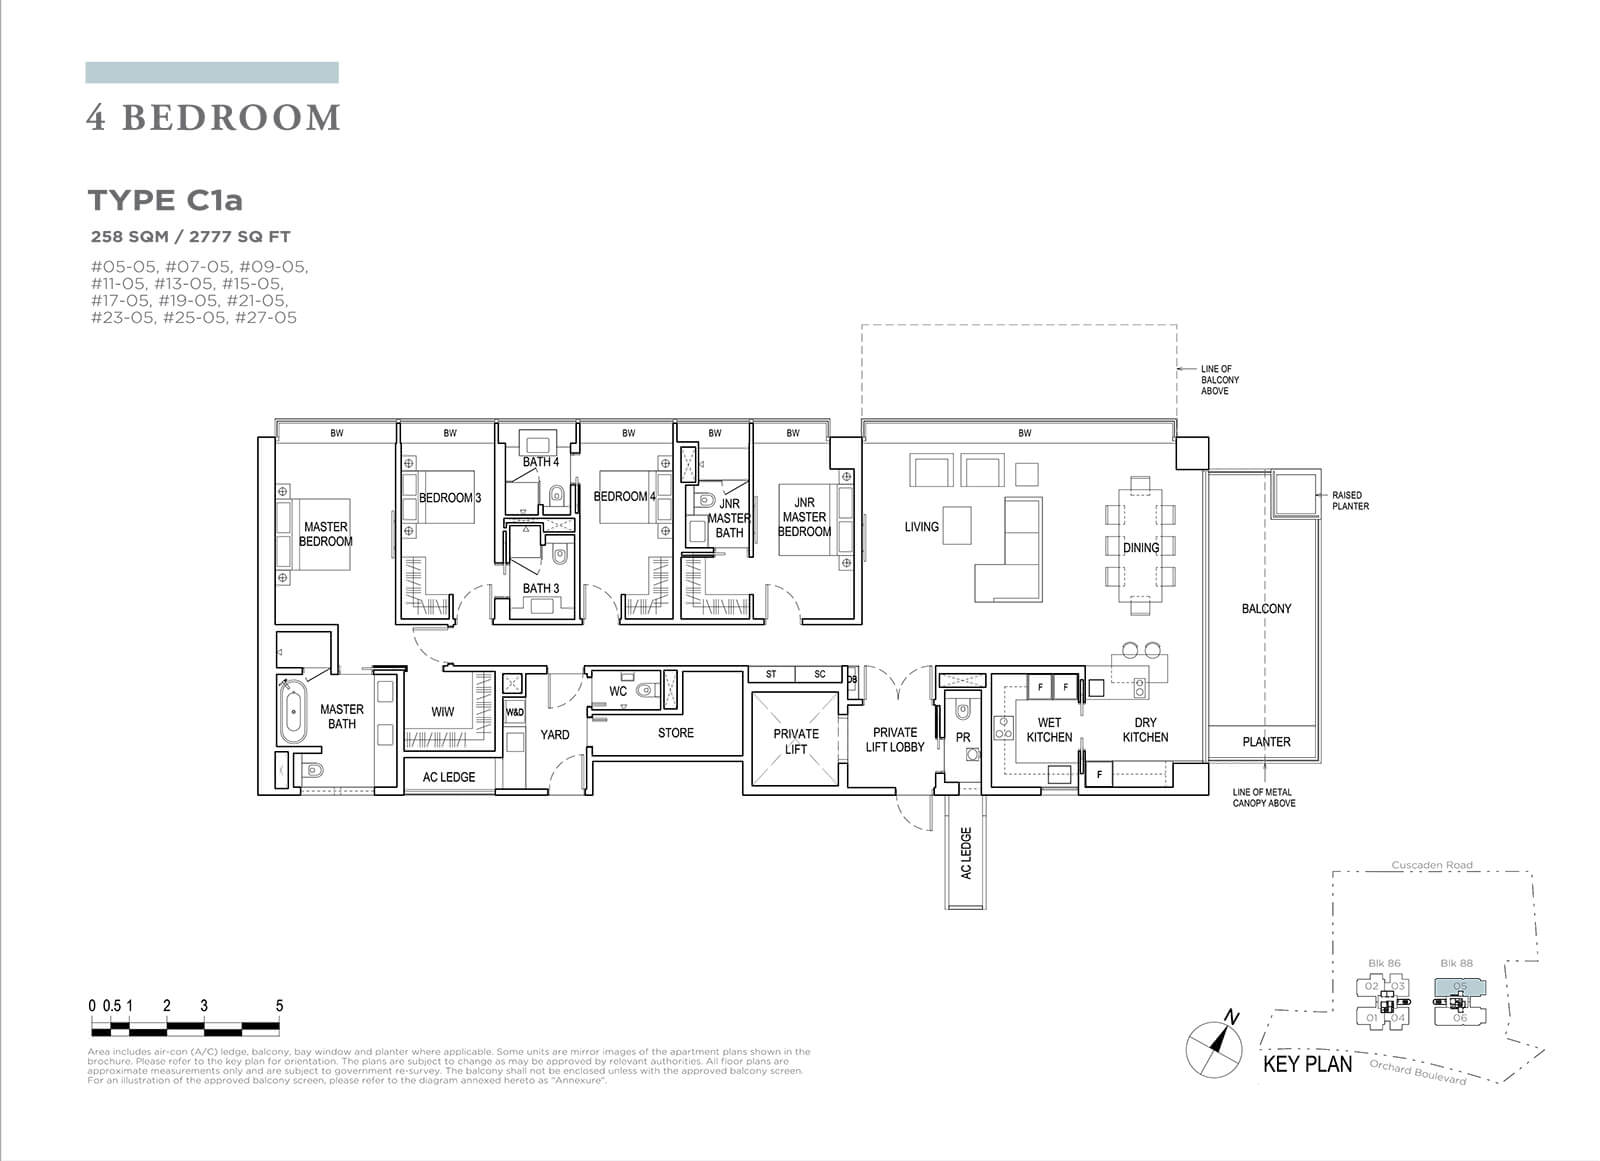 Boulevard 88 Floor Plan 4 Bedroom Type C1a